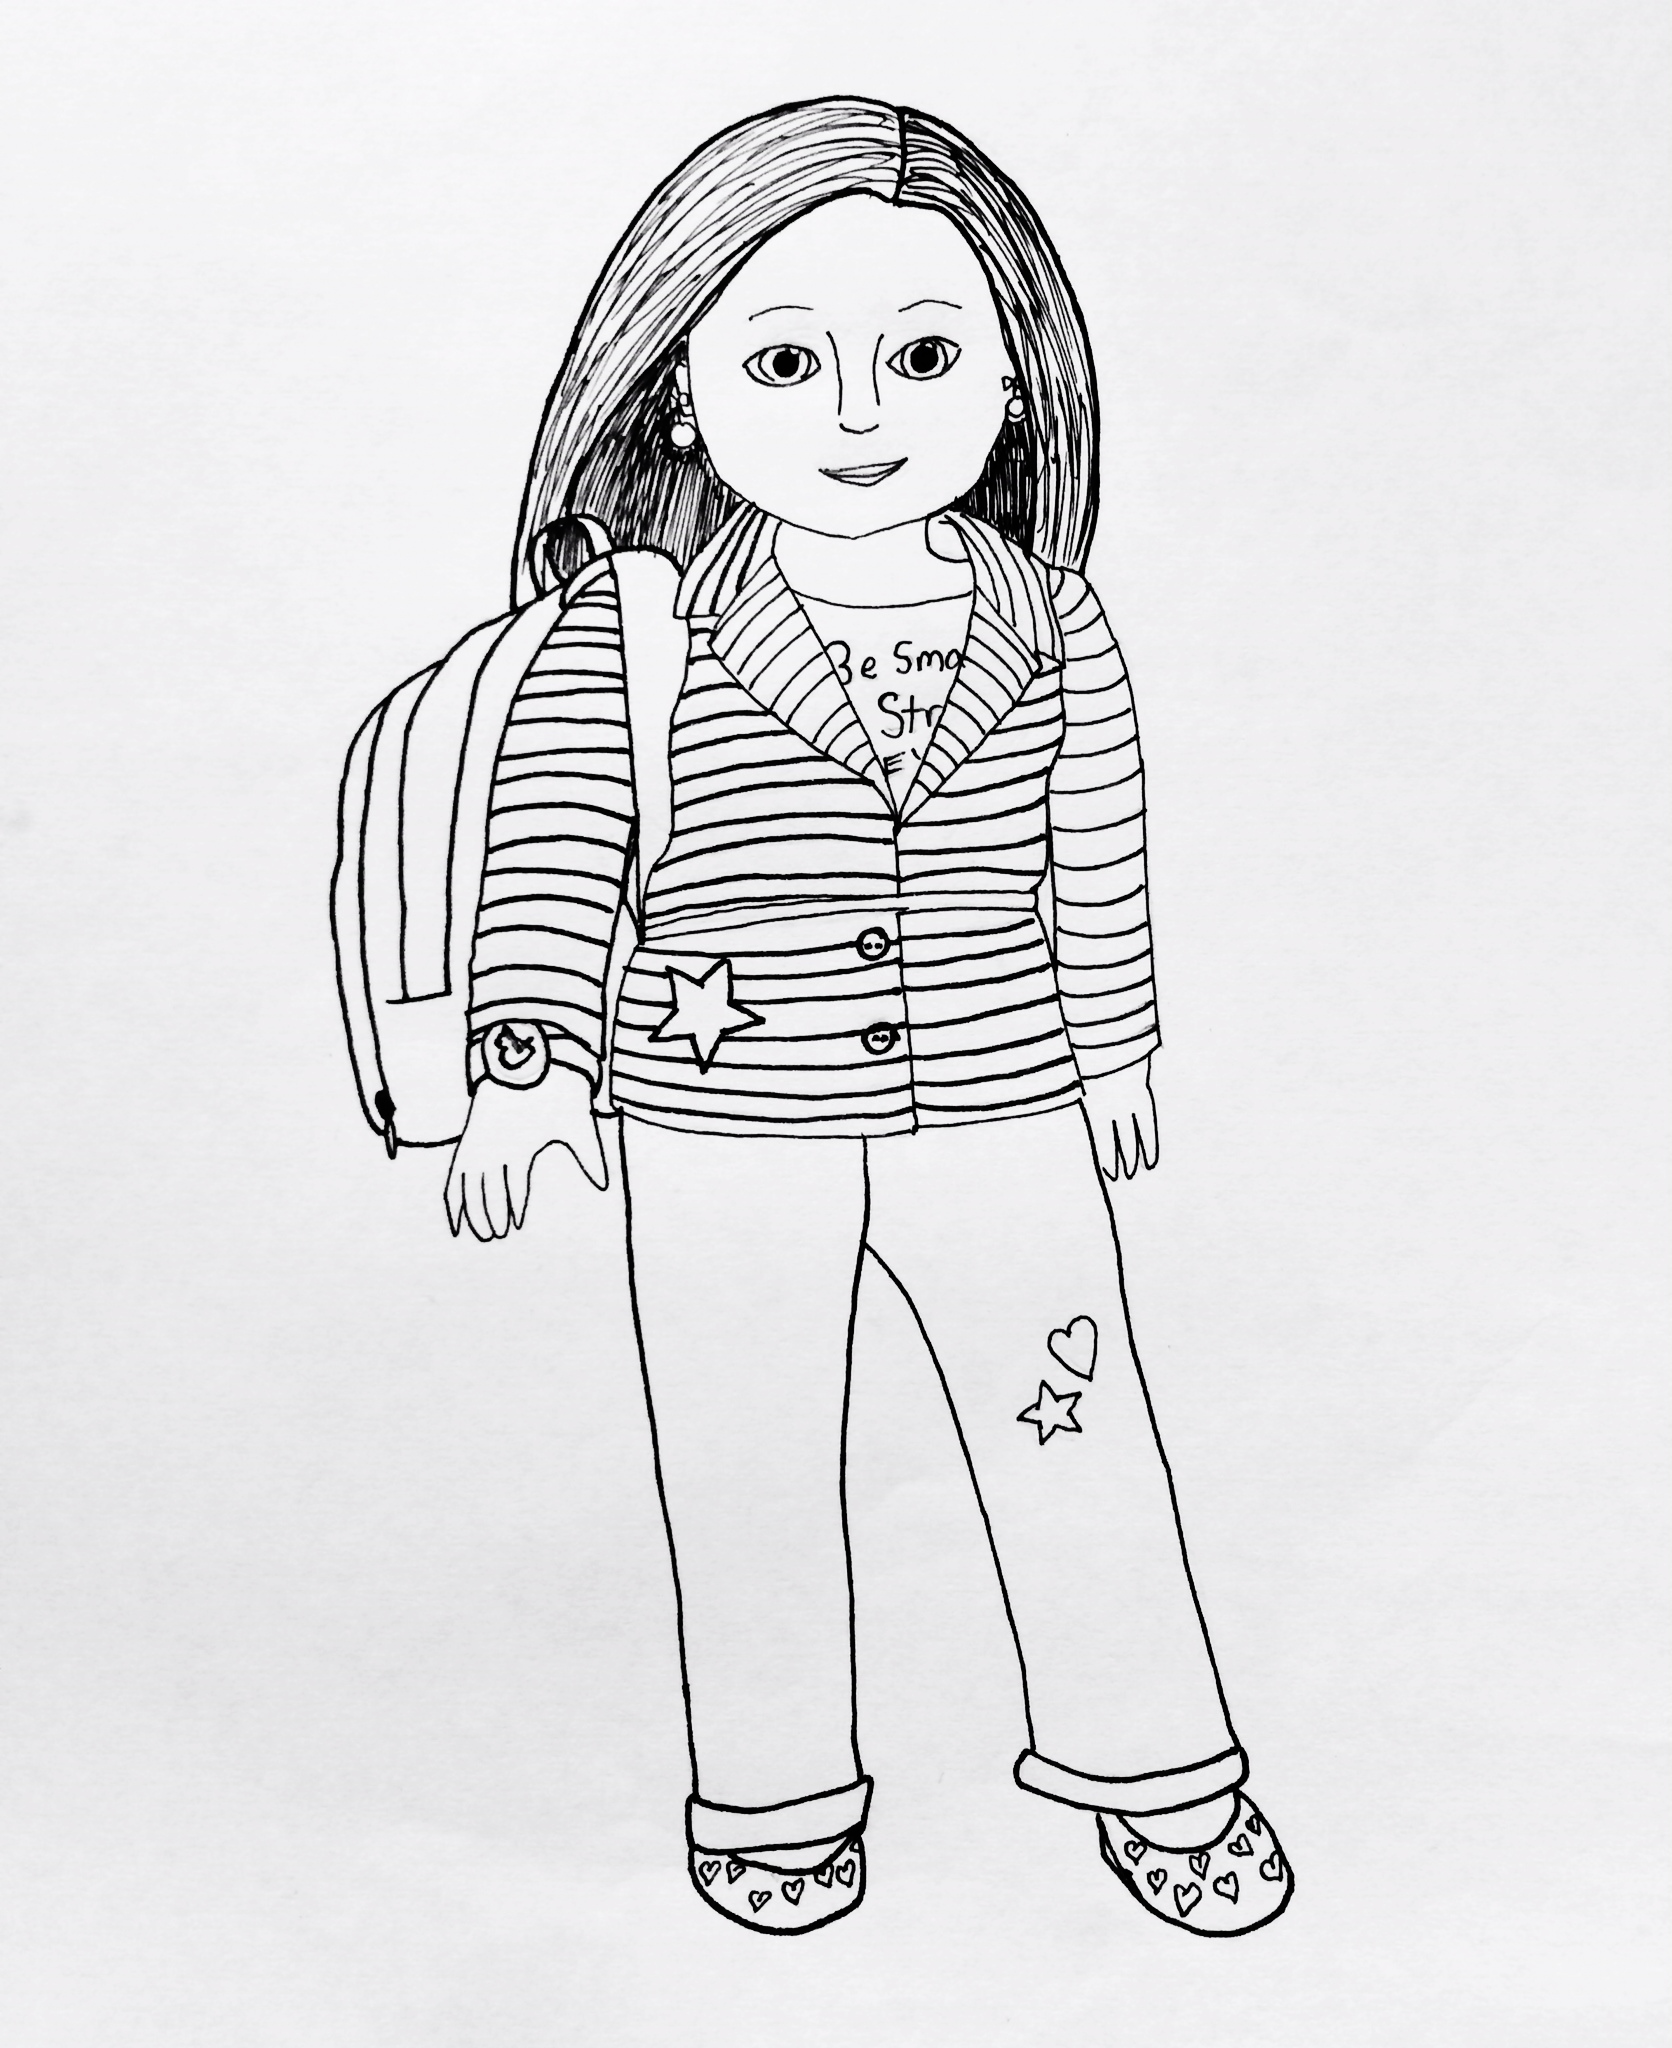 American Girl Doll Coloring Pages To Download And Print Coloring Pages Of American Dolls Printable